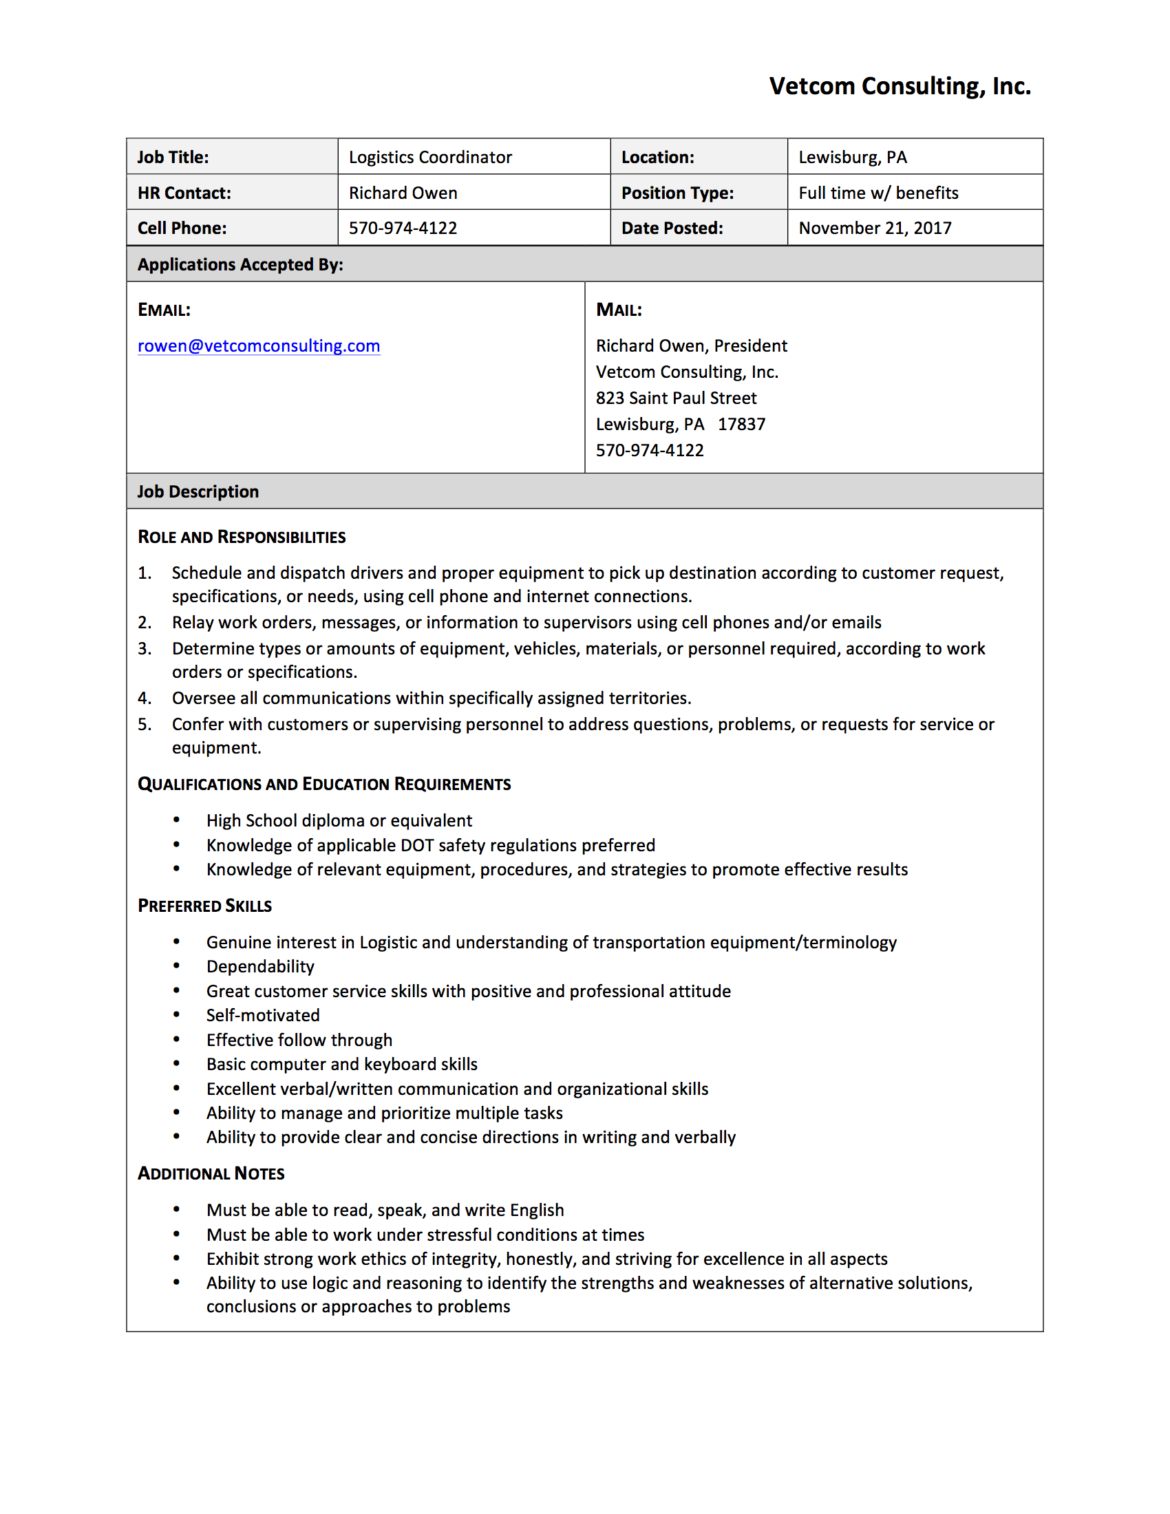 job description central pa chamber of commerce